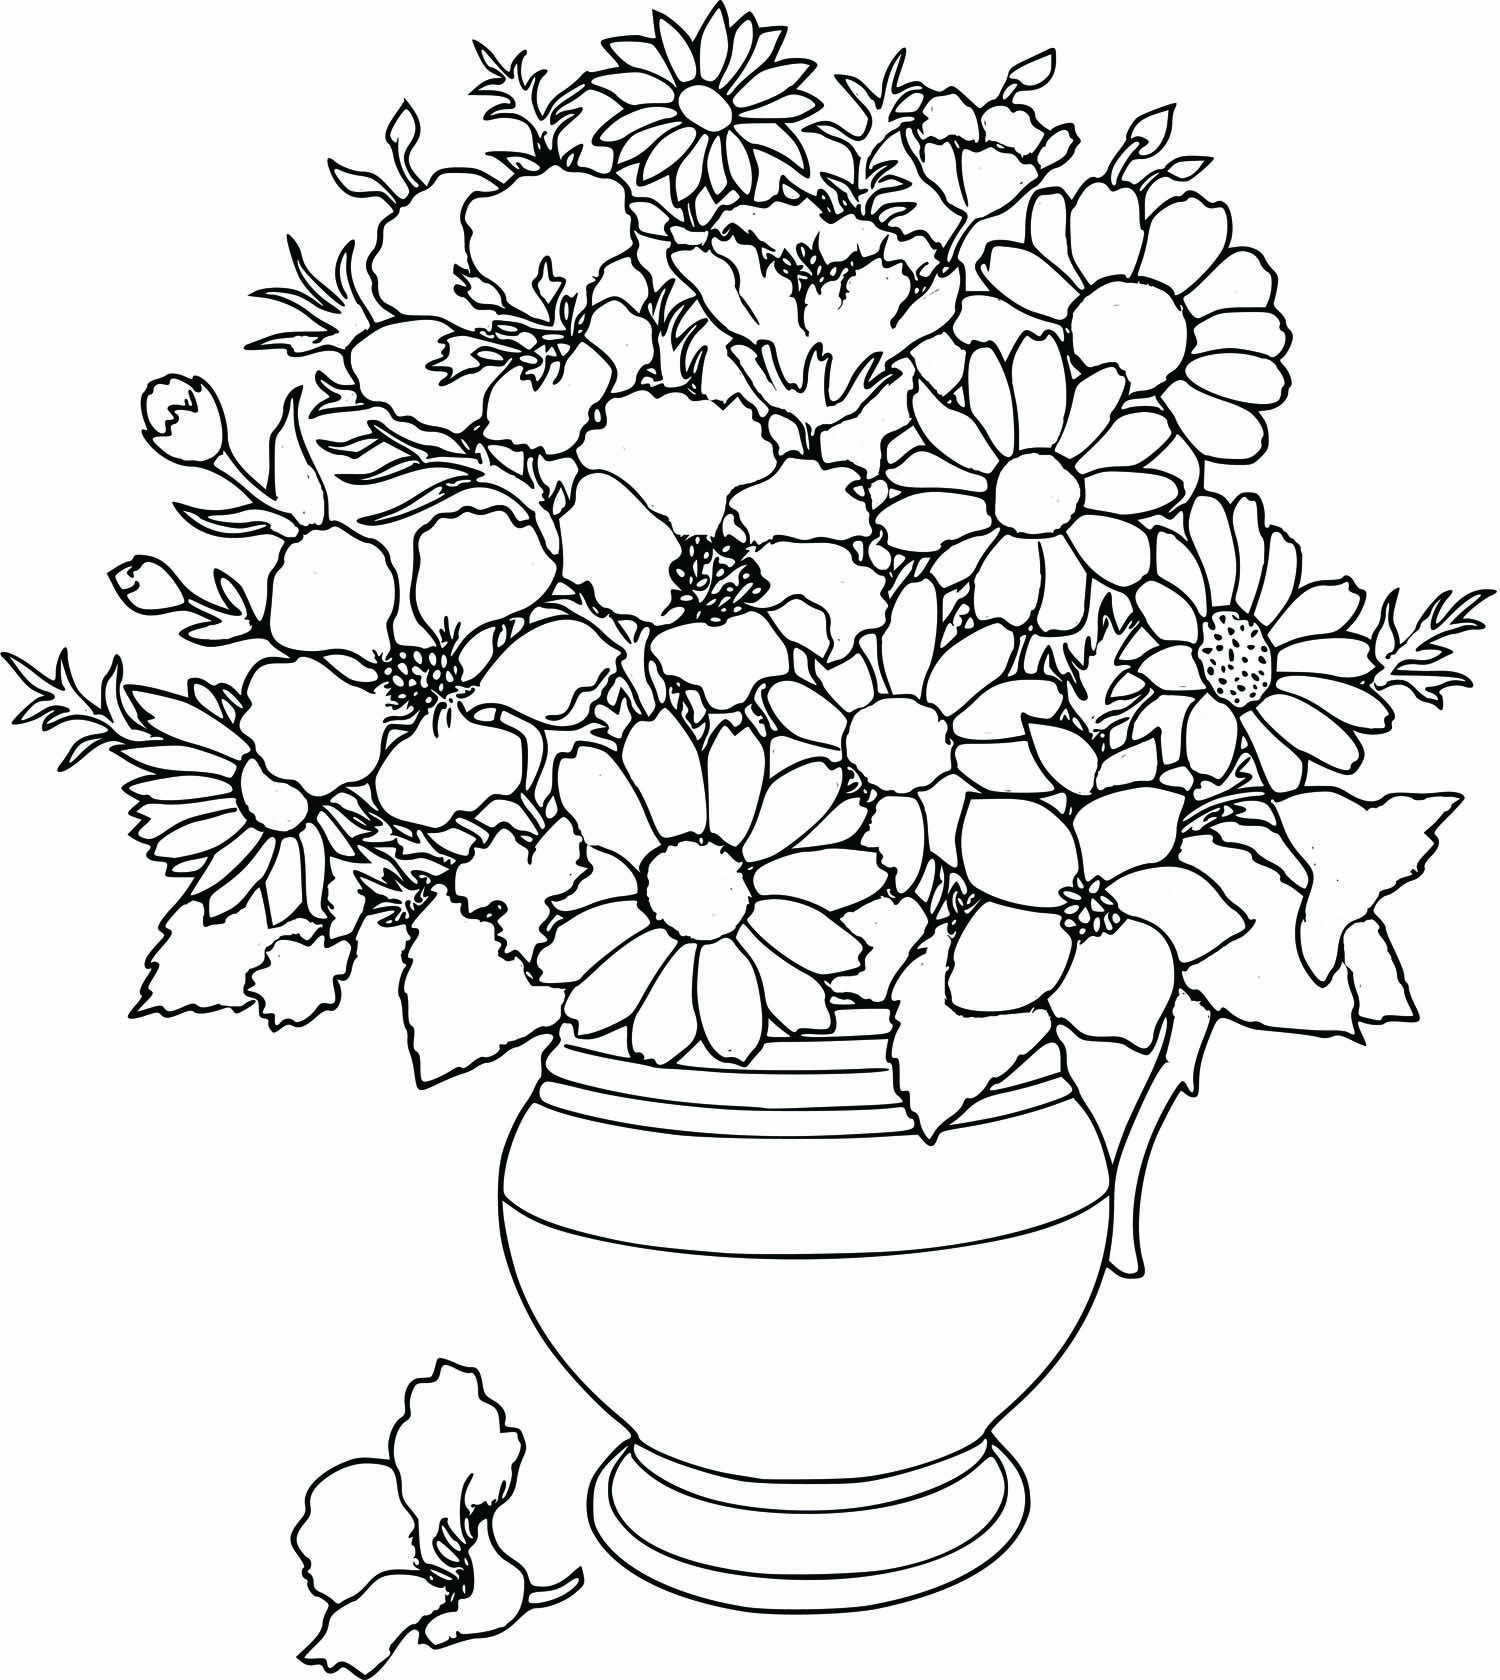 free coloring pages flowers # 0